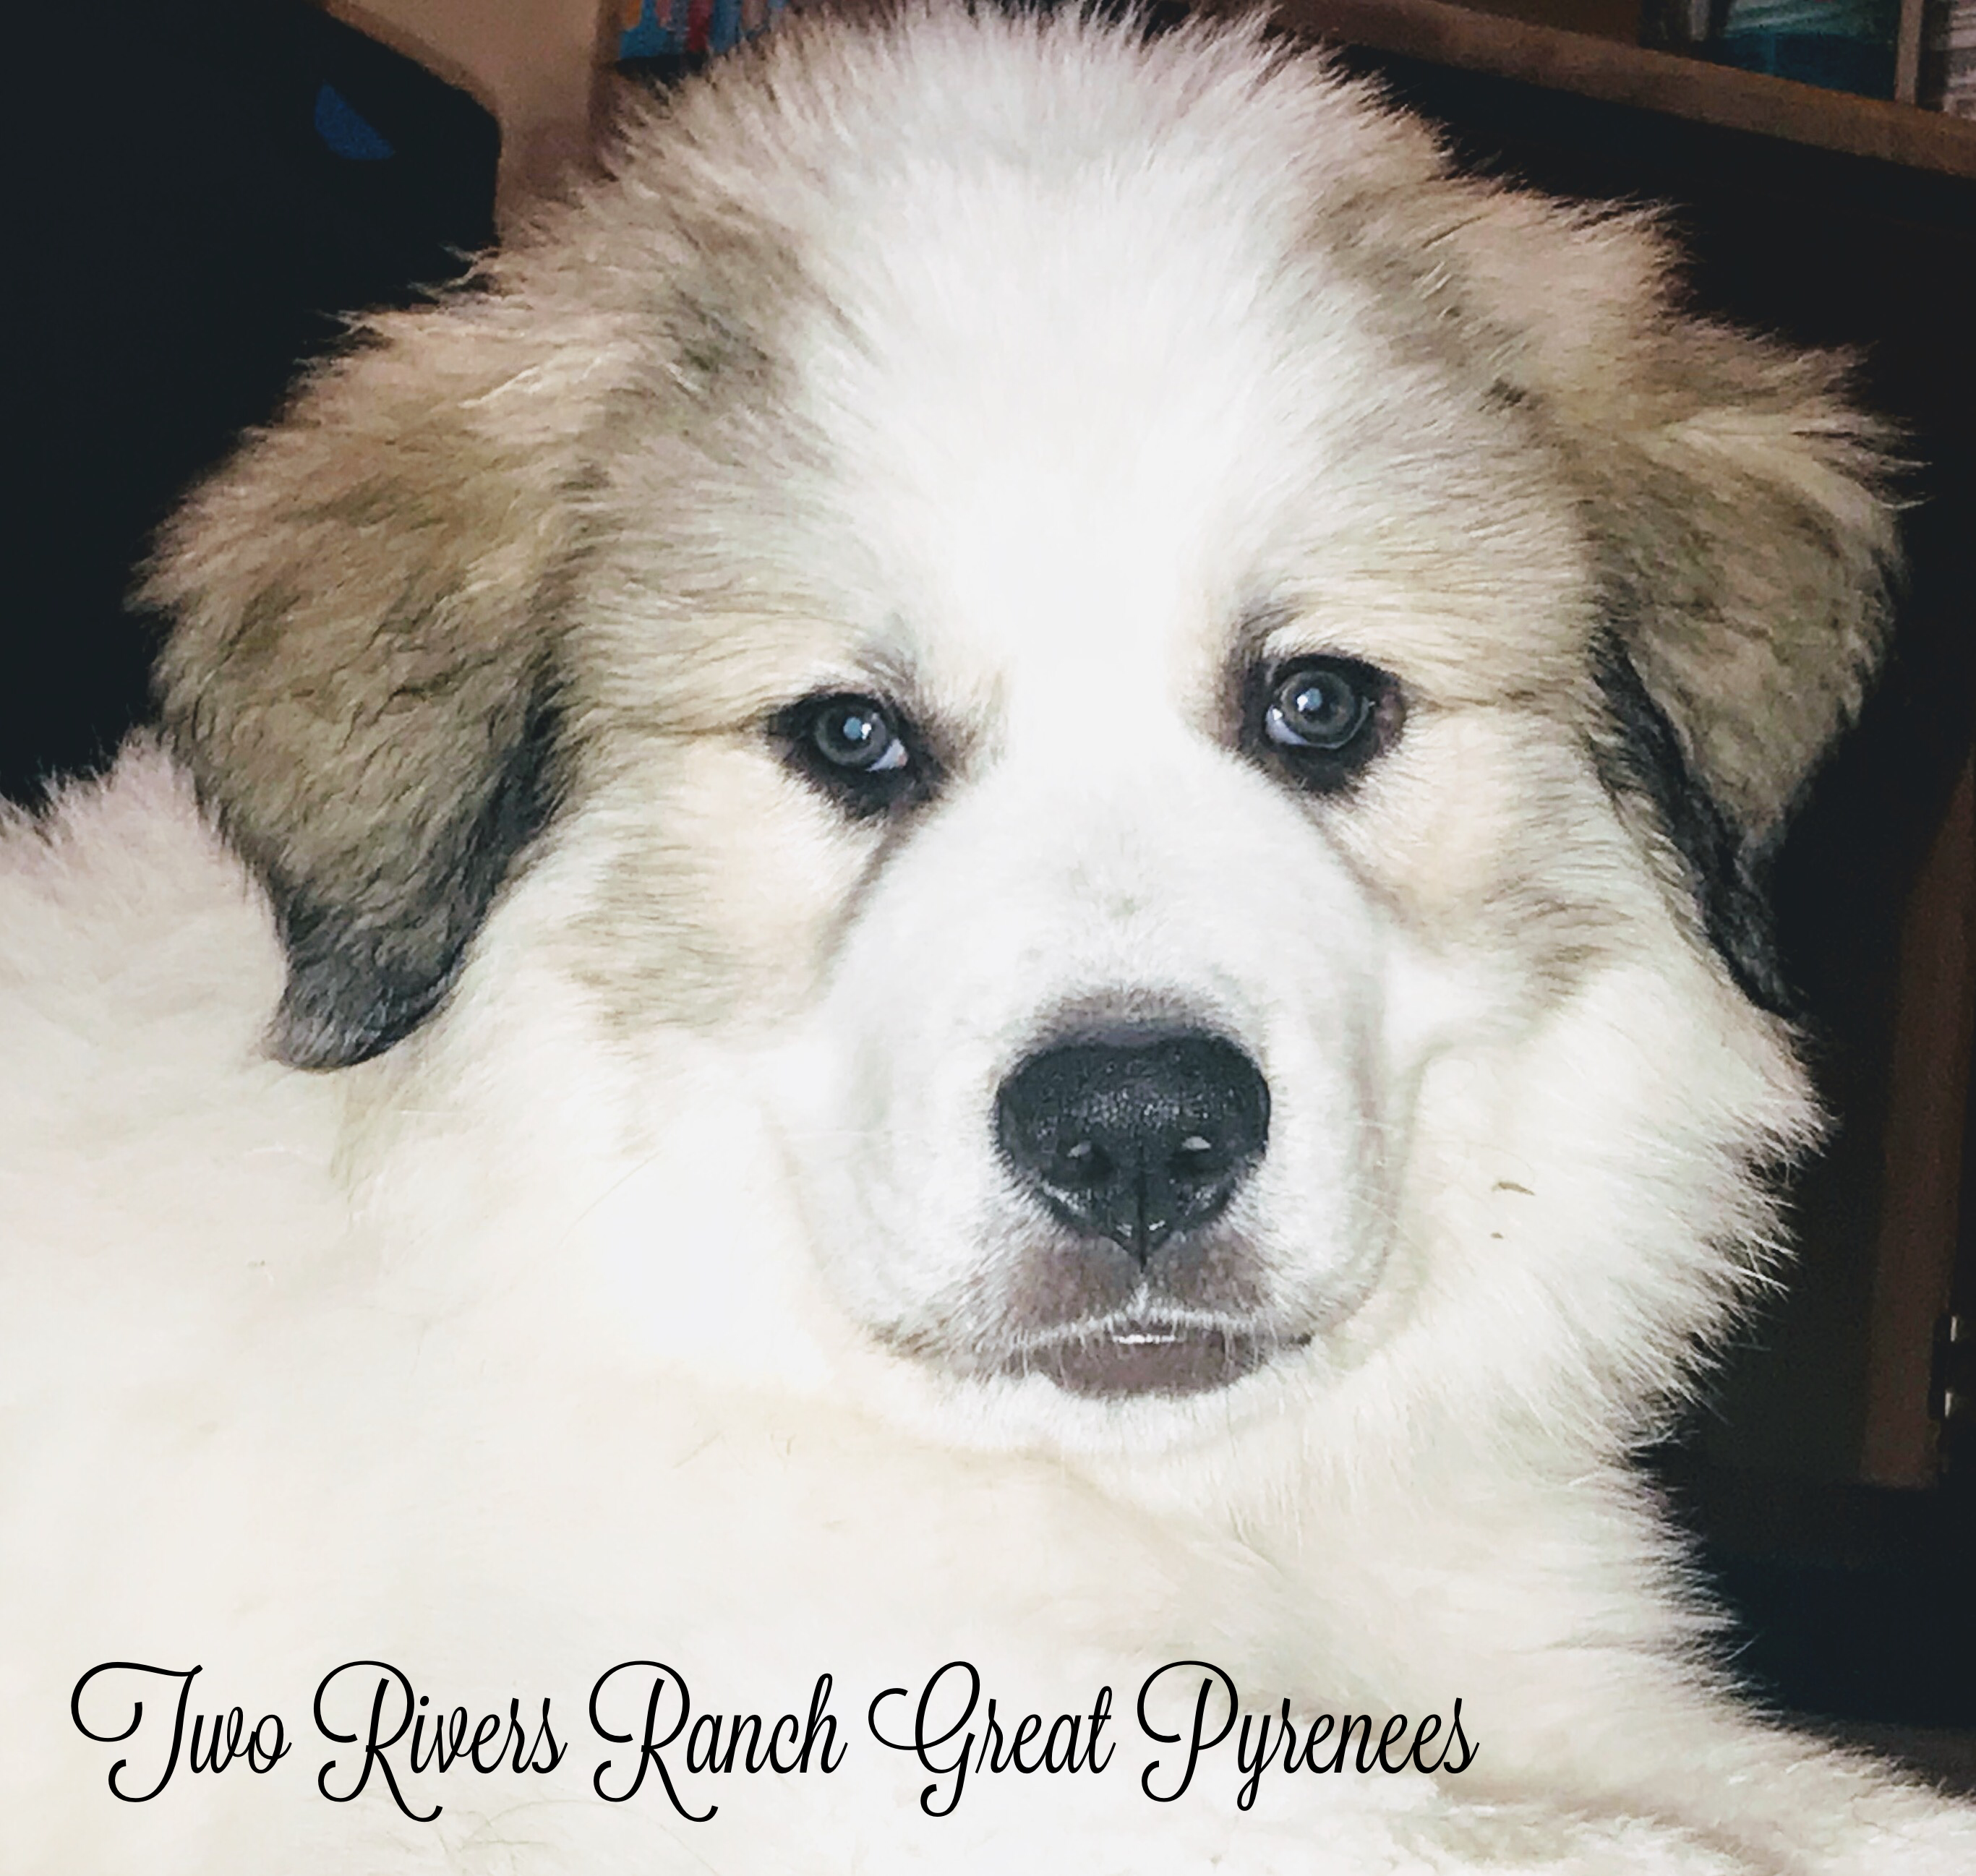 Pin by Two Rivers Ranch Great Pyrenees on Two Rivers Ranch Great